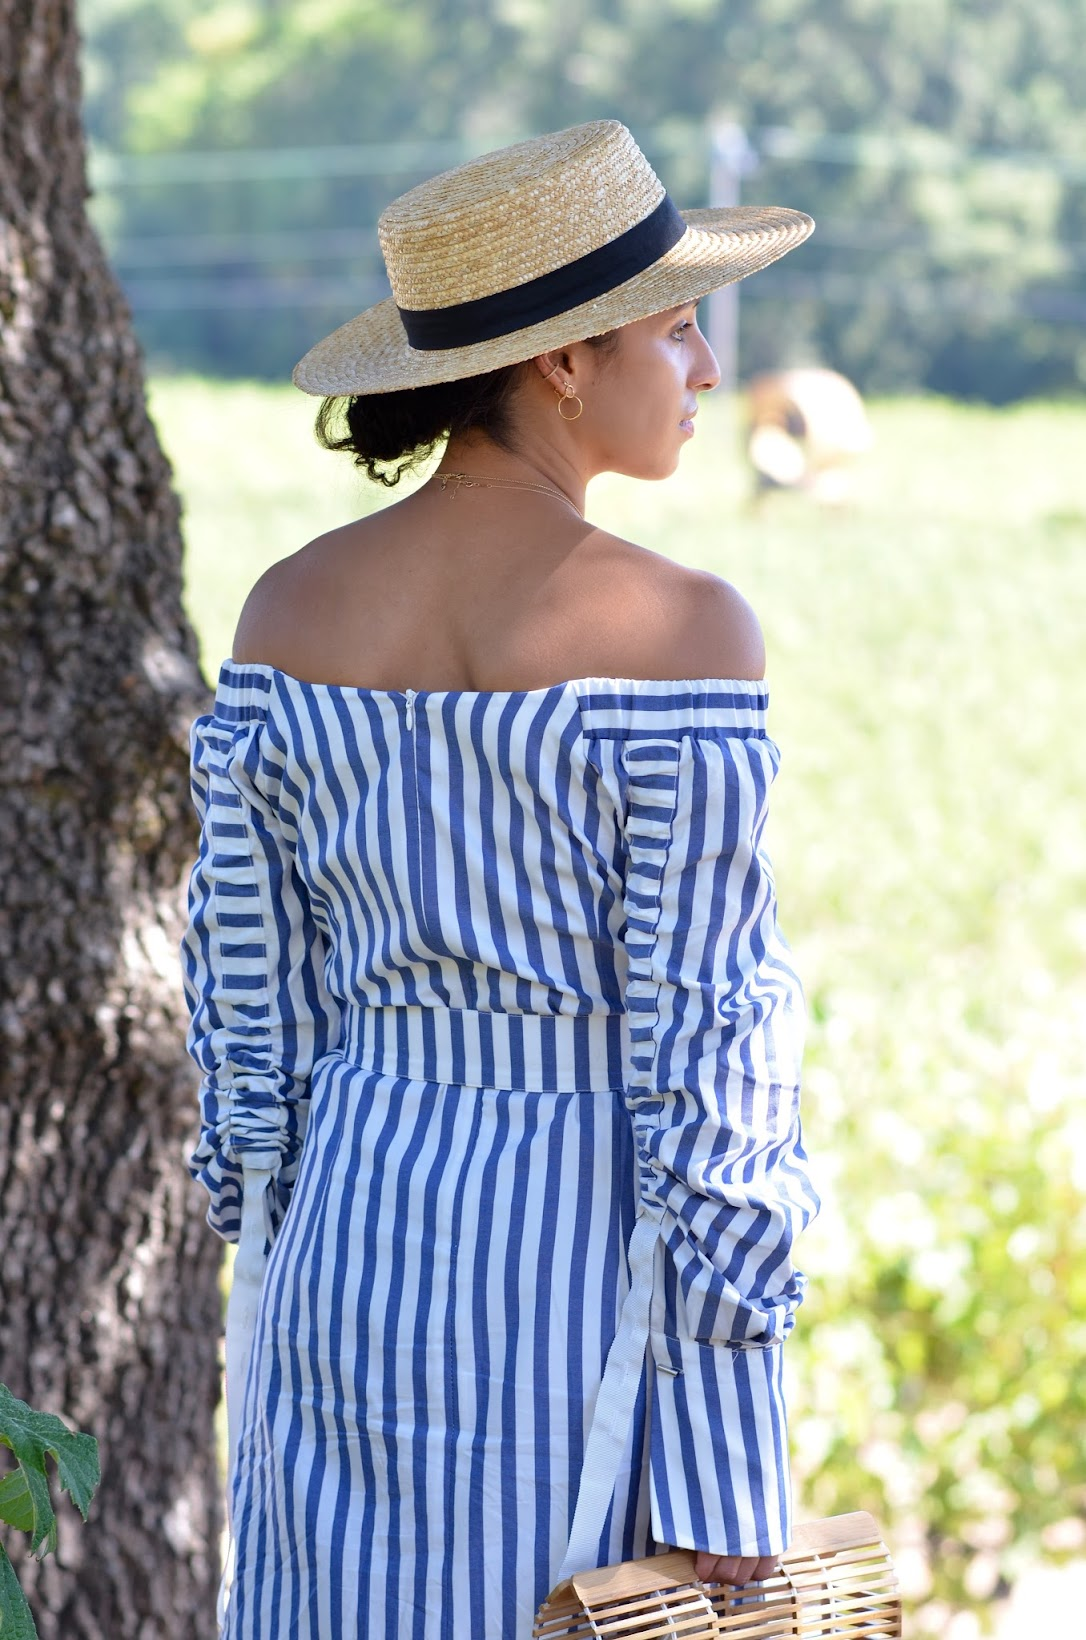 axr winery, calistoga wine tasting room, striped off the shoulder dress, wine tasting in calistoga, satin marigold slides, straw fedora, transitional dressing,